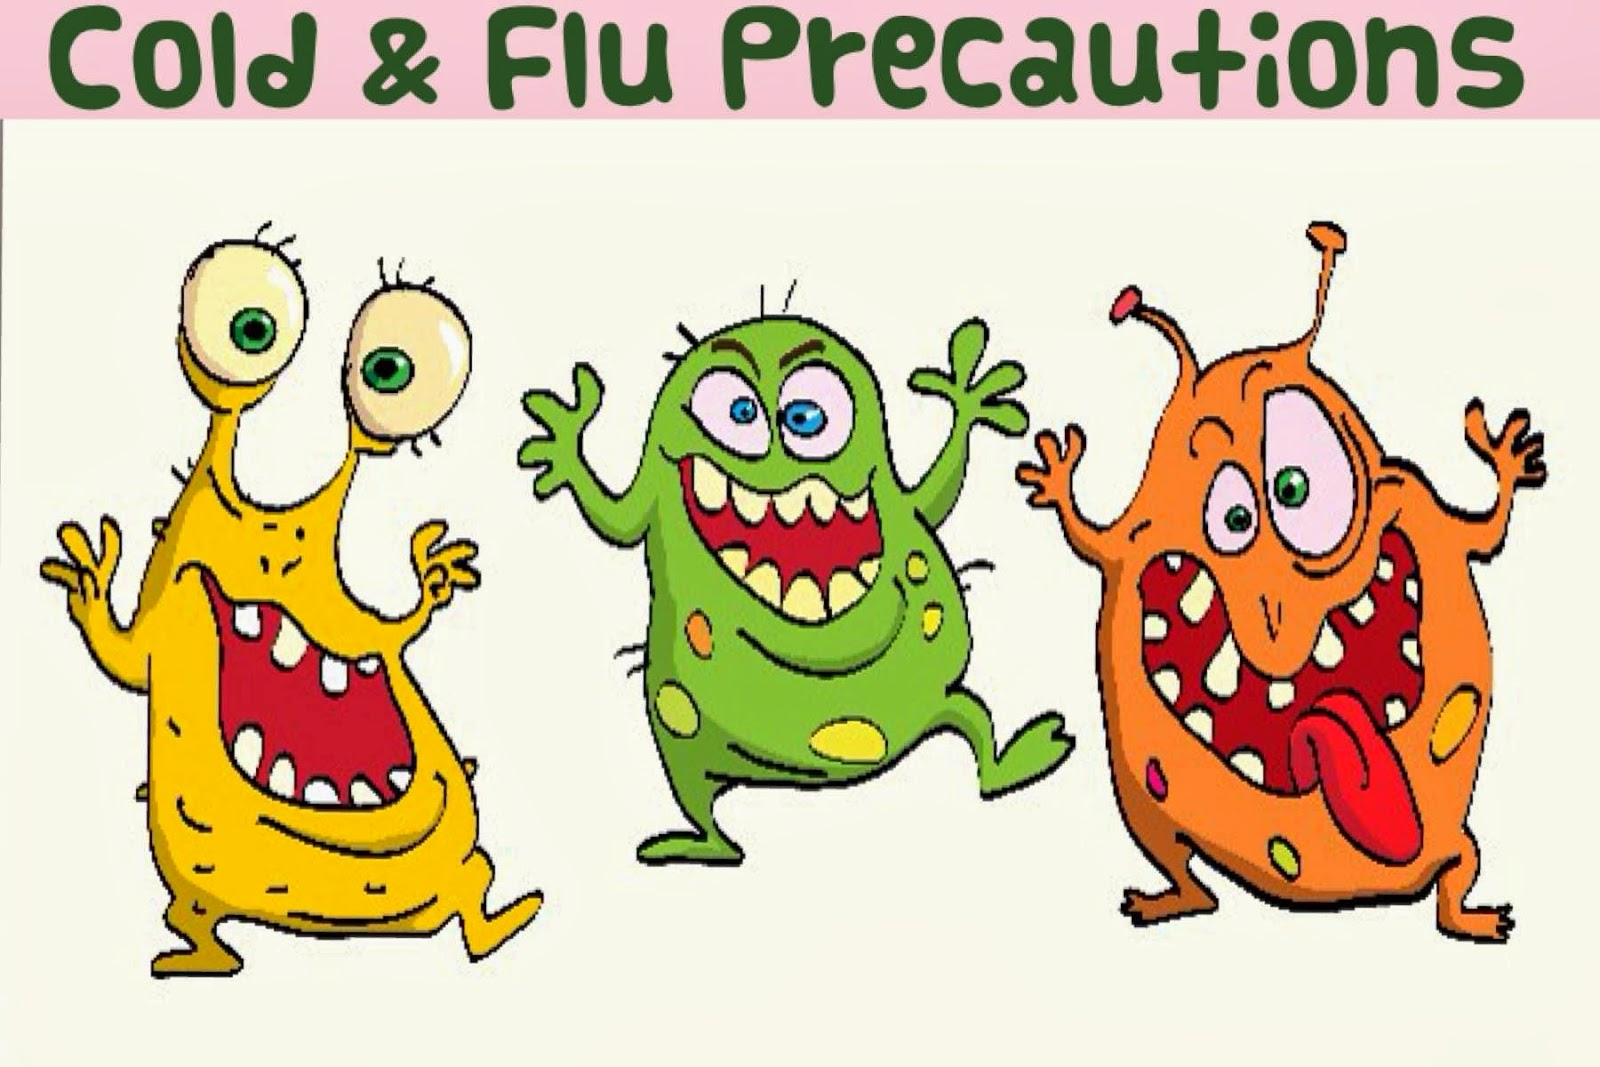 Precautions , precaution for cold, precautions for cough, precaution for flu , precaution for cold and flu , precautions for cold and cough, cold precaution , cough precautions, flu precautions, cold and cough precautions, cold and flu precautions, how to prevent cold, how to prevent cough, how to prevent flu , how to prevent cold and cough, how to prevent cold and flu, Natural Precautions , Natural precaution for cold, Natural precautions for cough, Natural precaution for flu , Natural precaution for cold and flu , Natural precautions for cold and cough, cold precaution , Natural cough precautions, Natural flu precautions, Natural cold and cough precautions, Natural cold and flu precautions,how to prevent cold naturally ,  how to prevent cough naturally , how to prevent flu naturally , how to prevent cold and cough naturally , how to prevent cold and flu naturally , transition time remedies, transition weather remedies, transition weather home remedies, transition time home remedies, precautions for transition weather, precautions for changing weather, precautions for weather change, precaution for transition time, Home remedies for transition weather, Home remedies  for changing weather, Home remedies for weather change, Home remedies for transition time,Home remedies for winter, home remedies for winter season, home remedies for cold season, home remedies for cold winter, home remedies for health, health remedies, home made medicine, home made medicine for winters, home made medicine for winter season, how to prevent cold, how to prevent cold in winter, how to prevent against cold in winter, how to prevent against cough in winter, how to prevent against cold and cough in winter, how to prevent against cold, how to prevent against cough, how to prevent against cold and cough , home made medicine for cold, home made medicine for cough, home made medicine for cold and cough, home remedies for cold, home remedies for cough, home remedies for cough, home remedies for cold and cough, home remedies to prevent cold, home remedies to prevent cough, home remedies to prevent cold and cough, home remedies for sour throat, home made medicine for sour throat, home remedies to prevent sour throat, how to recent sour throat, how to prevent pain in throat, home made medicine for  pain in throat, home remedies for pain in throat , how to prevent cold, how to recent cough, how to prevent cold and cough, how to prevent dry throat, home remedies for dry throat, home remedies for dry throat in winter, home made medicine for dry throat, home remedies for throat, home made medicine for throat, home remedies for winter throat, how to prevent cold , winter remedies, winter home remedies, remedies for winter, remedies for cold and cough, remedies for cough, remedies for cold, remedies for pain in throat , remedies for dry throat, cold, cough, cold and cough, dry throat, throat, pain in throat, winter health, health, health problems, health problems in winters, health problems remedies, how to keep Warm in winter, how to keep cold away,beauty , fashion,beauty and fashion,beauty blog, fashion blog , indian beauty blog,indian fashion blog, beauty and fashion blog, indian beauty and fashion blog, indian bloggers, indian beauty bloggers, indian fashion bloggers,indian bloggers online, top 10 indian bloggers, top indian bloggers,top 10 fashion bloggers, indian bloggers on blogspot,home remedies, how to,Home remedies for body pain, home remedies for neck pain , home remedies for back pain, home remedies for arms pain, home remedies for headaches , home remedies for legs pain, home remedies for muscle pain, home remedies for complete body pain, home remedies for joint pain, home remedies for tiredness, home remedies for  atheist , home remedies for winter pain, home remedies for winter joint pain, home remedies for emotional pain, Oil for body pain, Oil for neck pain , Oil for back pain, Oil for arms pain, Oilfor headaches , Oil for legs pain, Oil for muscle pain, Oil for complete body pain, Oil for joint pain, Oil for tiredness, Oil for  atheist , Oil for winter pain, Oil for winter joint pain, Oil for emotional pain,  Home made Oil for body pain, Home made Oil for neck pain , Home made  for back pain, Home made Oil for arms pain, Home made Oil for headaches , Home made oil for legs pain, Home made Oil for muscle pain, Home made Oil for complete body pain, Home made Oil for joint pain, Home made Oil for tiredness, Home made Oil for  atheist , Home made Oil for winter pain, Home made Oil for winter joint pain, Home made Oil for emotional pain, Black pepper Oil for body pain, Black pepper Oil for neck pain , Black pepper Oil for back pain, Black pepper Oil for arms pain, Black pepper Oil for headaches , Black pepper Oil for legs pain, Black pepper Oil for muscle pain, Black pepper Oil for complete body pain, Black pepper Oil for joint pain, Black pepper Oil for tiredness, Black pepper Oil for  atheist , Black pepper Oil for winter pain, Black pepper Oil for winter joint pain, Black pepper Oil for emotional pain, Garlic Oil for body pain, Garlic Oil for neck pain , Garlic Oil for back pain, Garlic Oil for arms pain, Garlic Oil for headaches , Garlic Oil for legs pain, Garlic Oil for muscle pain, Garlic Oil for complete body pain, Garlic Oil for joint pain, Garlic Oil for tiredness, Garlic Oil for  atheist , Garlic Oil for winter pain, Garlic Oil for winter joint pain, Garlic Oil for emotional pain, how to make oil at home, how to make  essential oil at home, how to make infused oil at home, how to make essential oil, how to make pepper oil, how to make pepper oil at home, how to make peppercorn oil, how to make peppercorn oil at home, how to make black pepper oil, how to make black pepper oil at home, how to make garlic oil, how to make garlic oil at home, how to make garlic and pepper oil, garlic oil , pepper oil, peppercorn oil, black pepper oil, peppercorn oil, pepper essential oil, black pepper essential oil, peppercorn essential oil, garlic essential oil,body pain, neck pain,